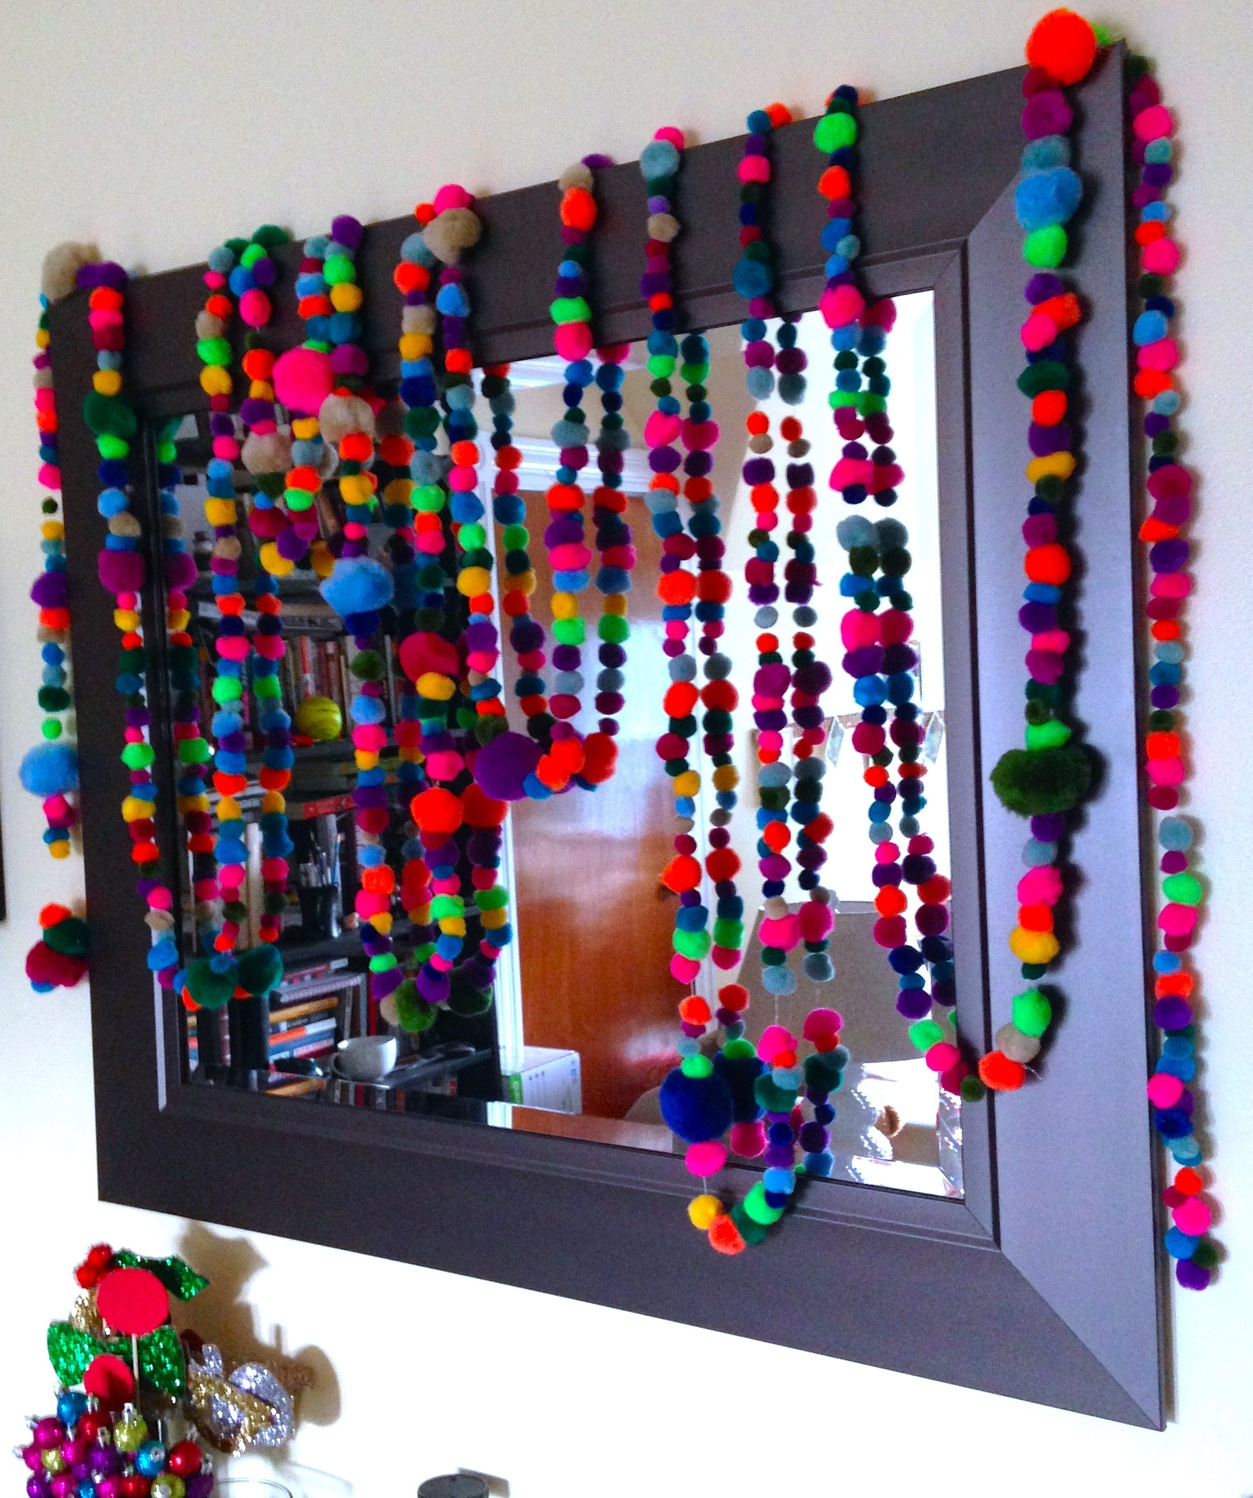 Garland isn't just for the tree! Carefully style it around your house to make every room a little more merry!